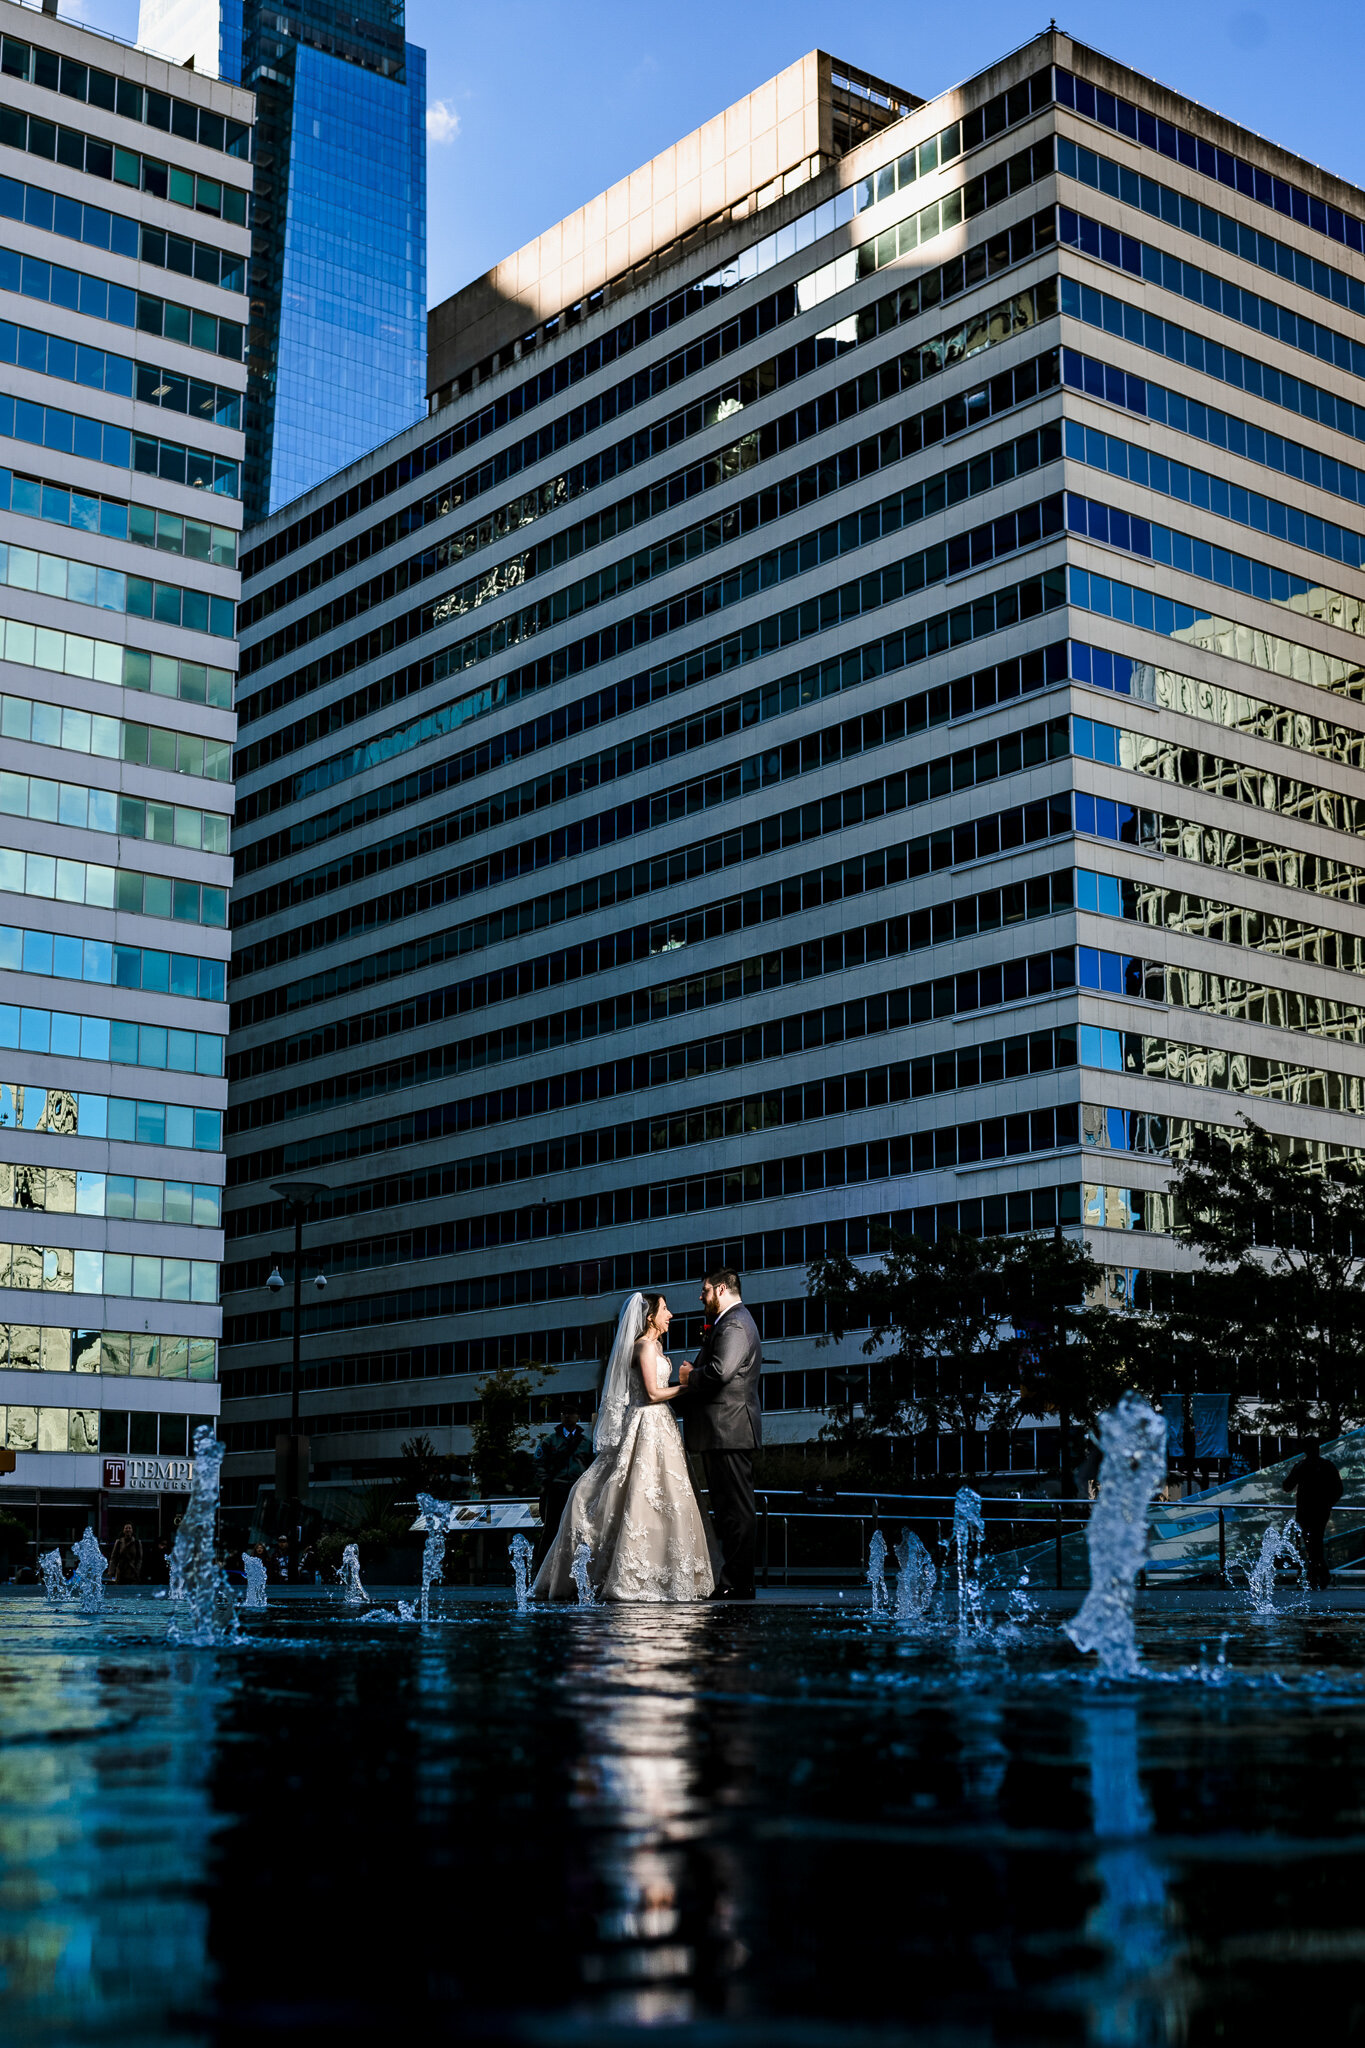 Brozenia-Ritz-Carlton-Philadelphia-Wedding-Photographer-28.JPG